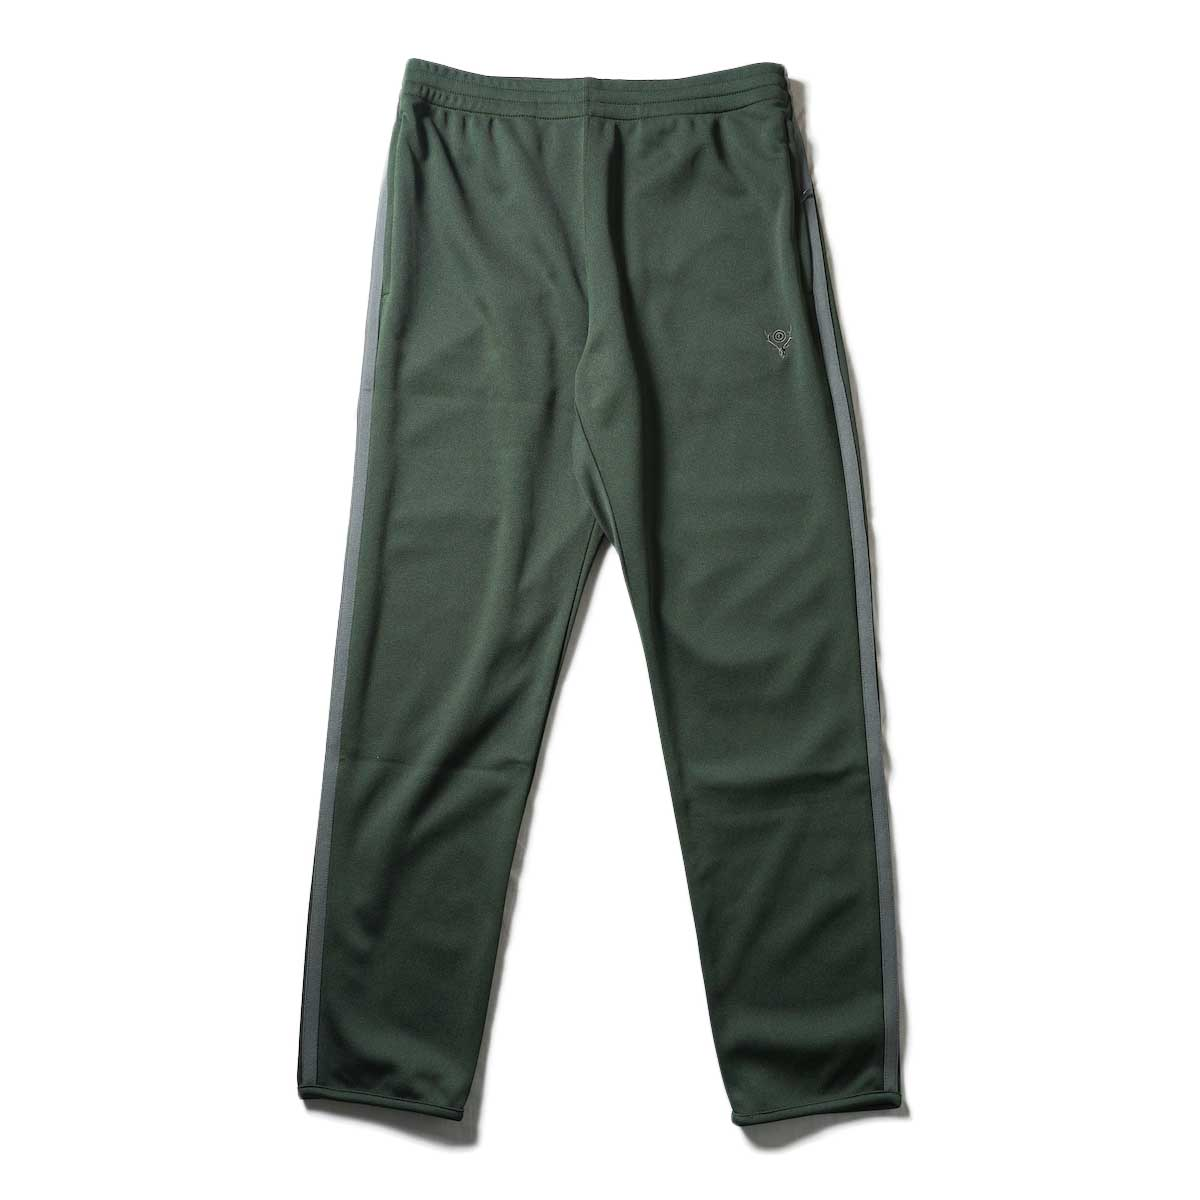 South2 West8 / Trainer Pants - Poly Smooth (Green)正面